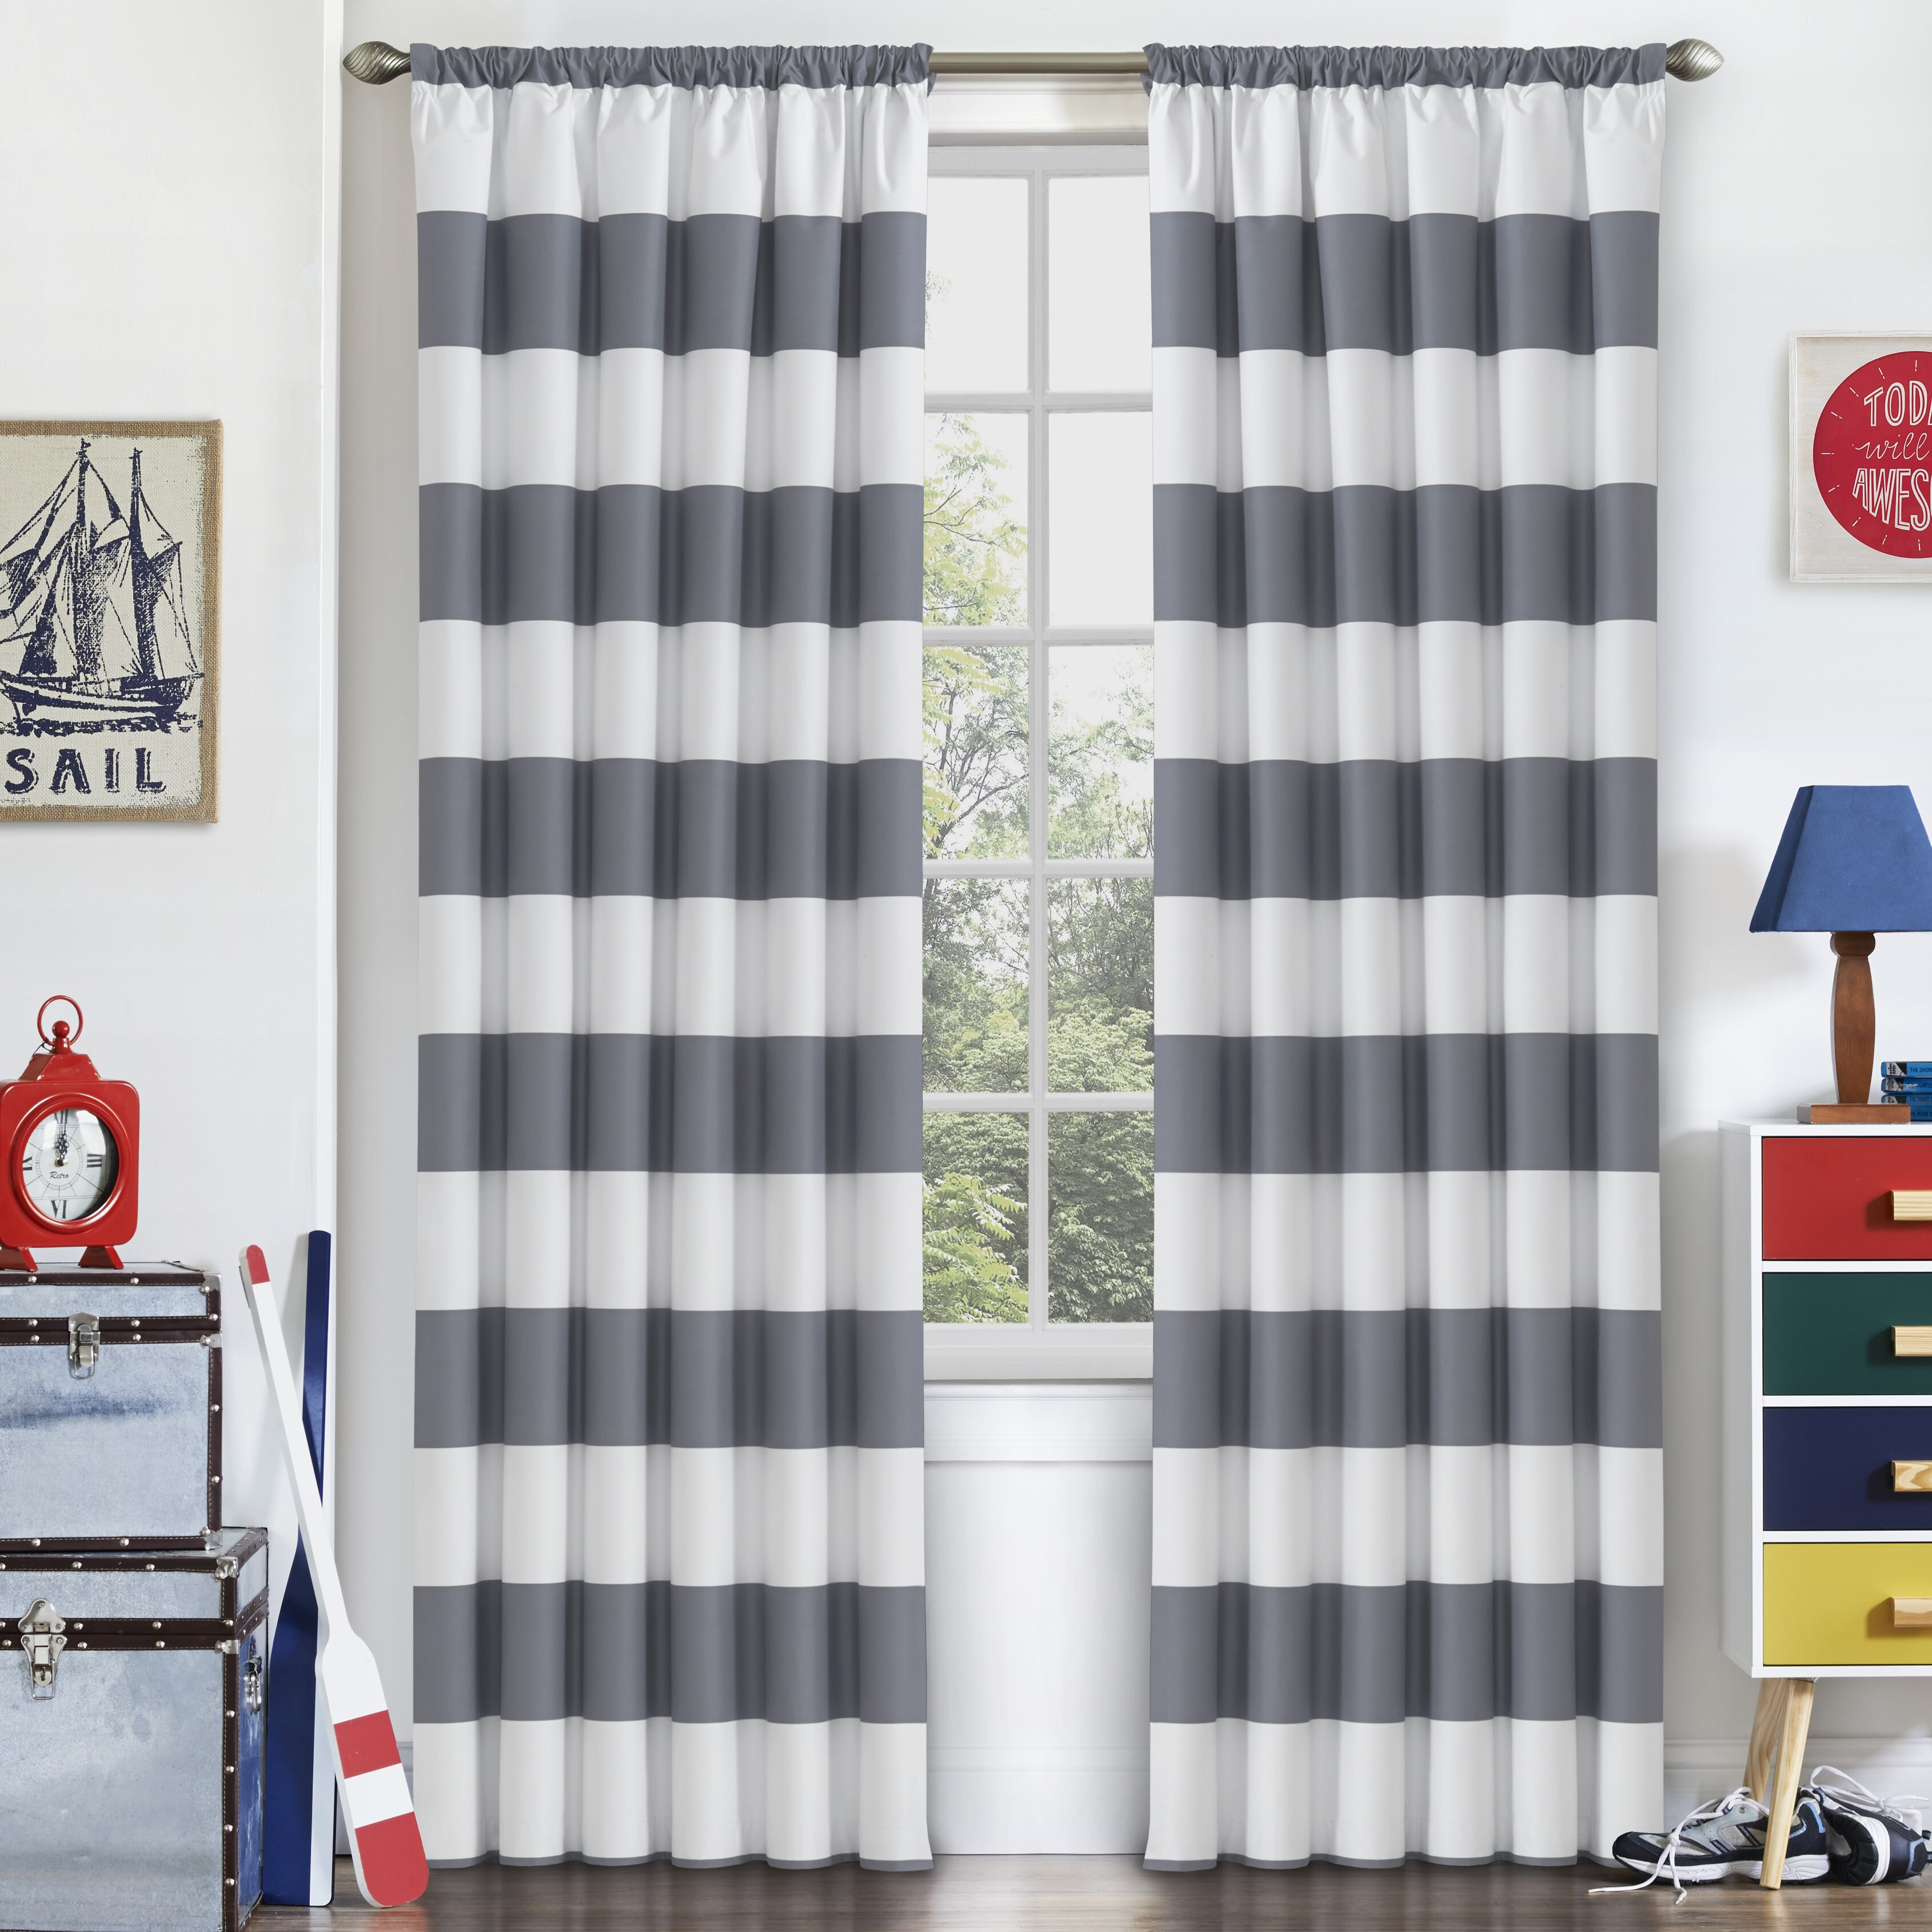 Jameson panel crib for sale - Viv Rae Trade Jameson Curtain Striped Blackout Thermal Single Panel